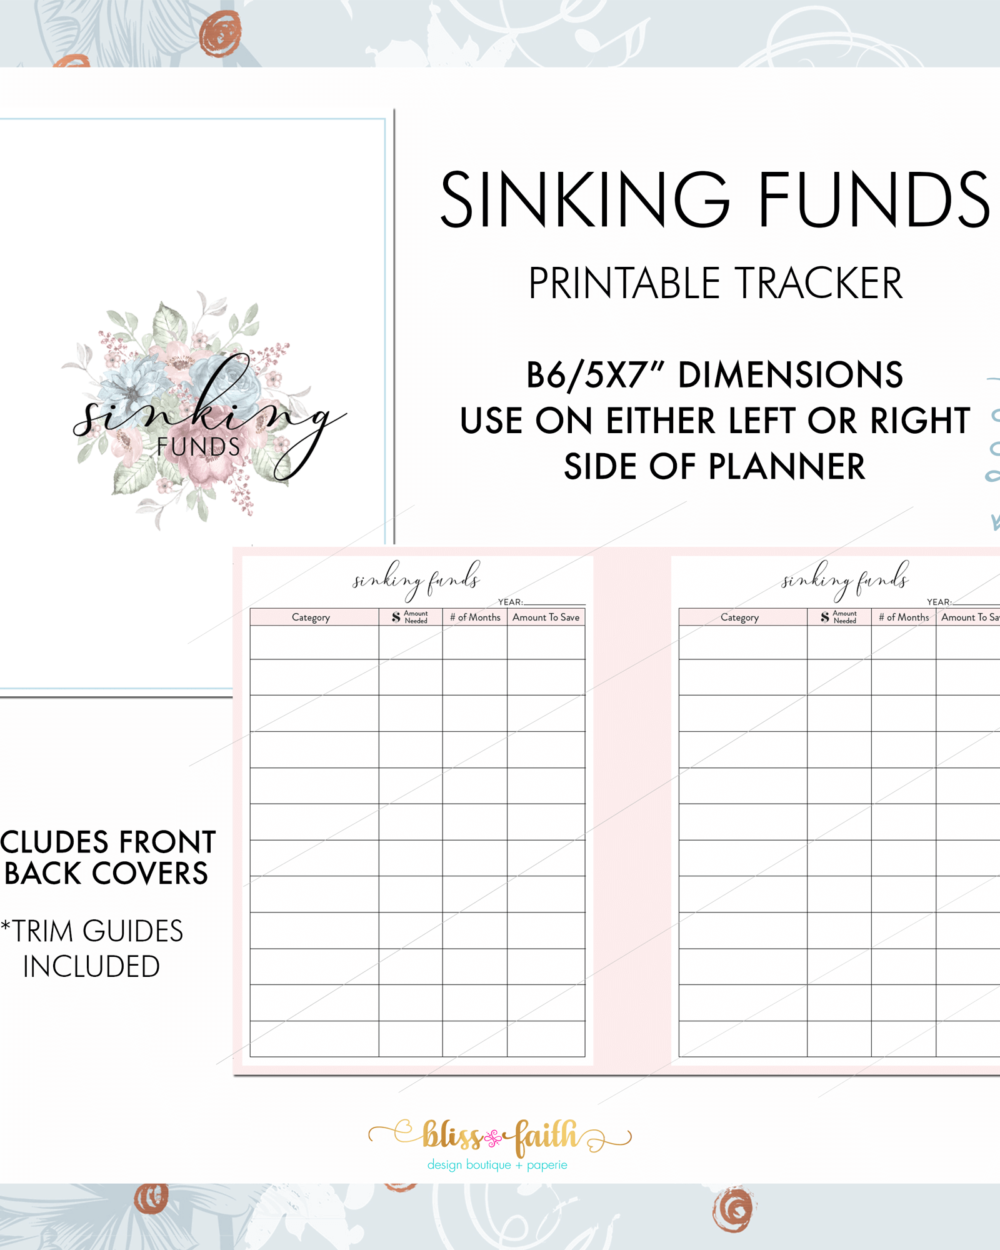 Sinking Funds Printable Tracker Printable Insert | BlissandFaith.com